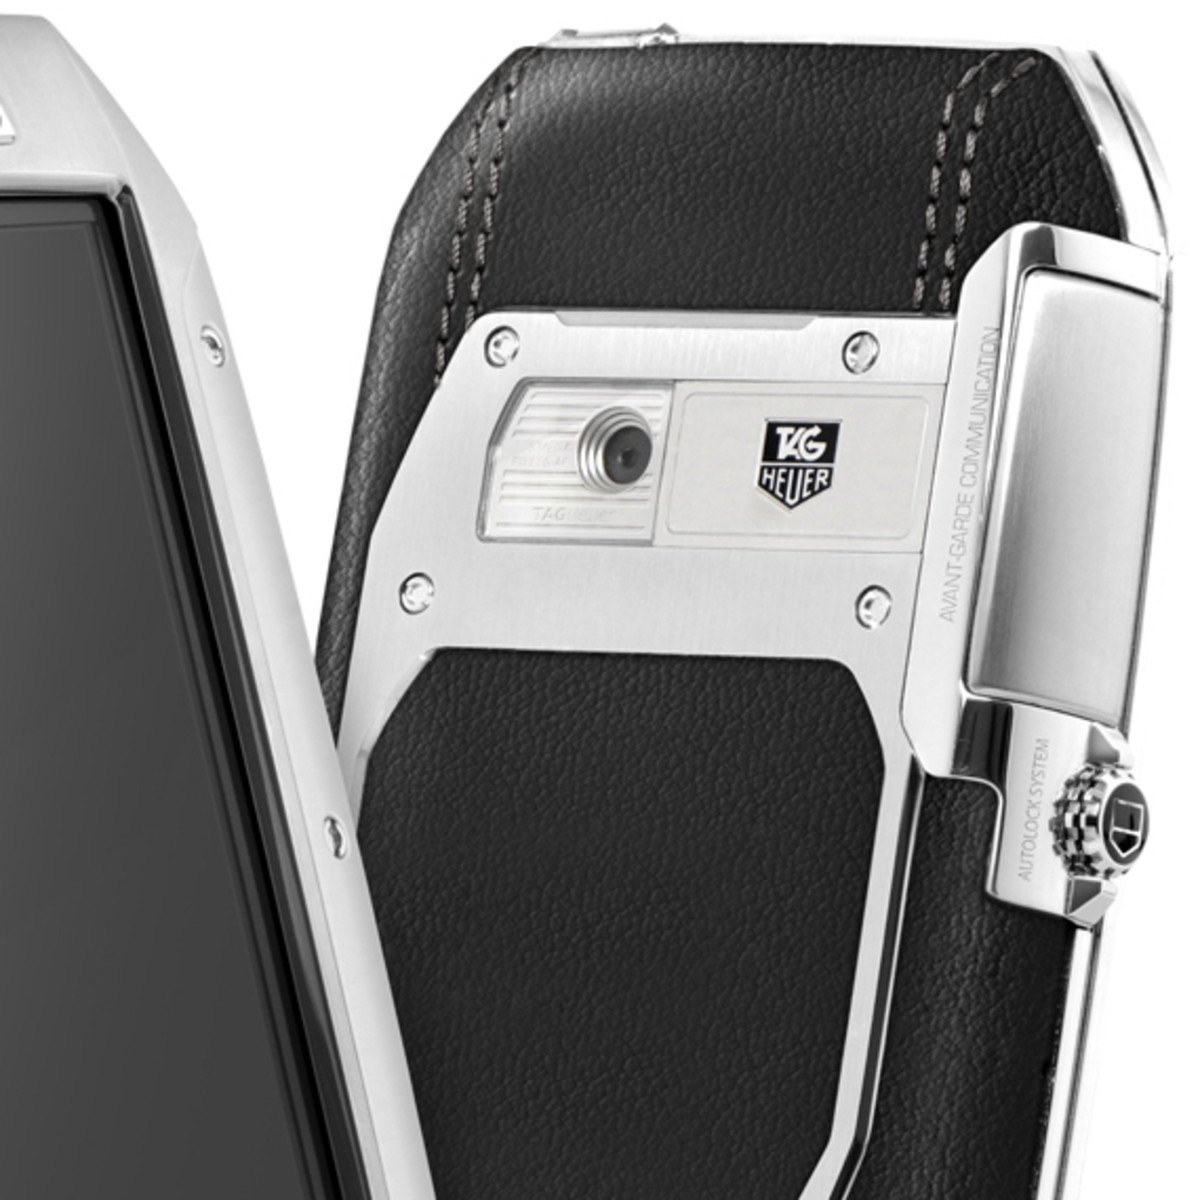 tag-heuer-link-mobile-phone-06